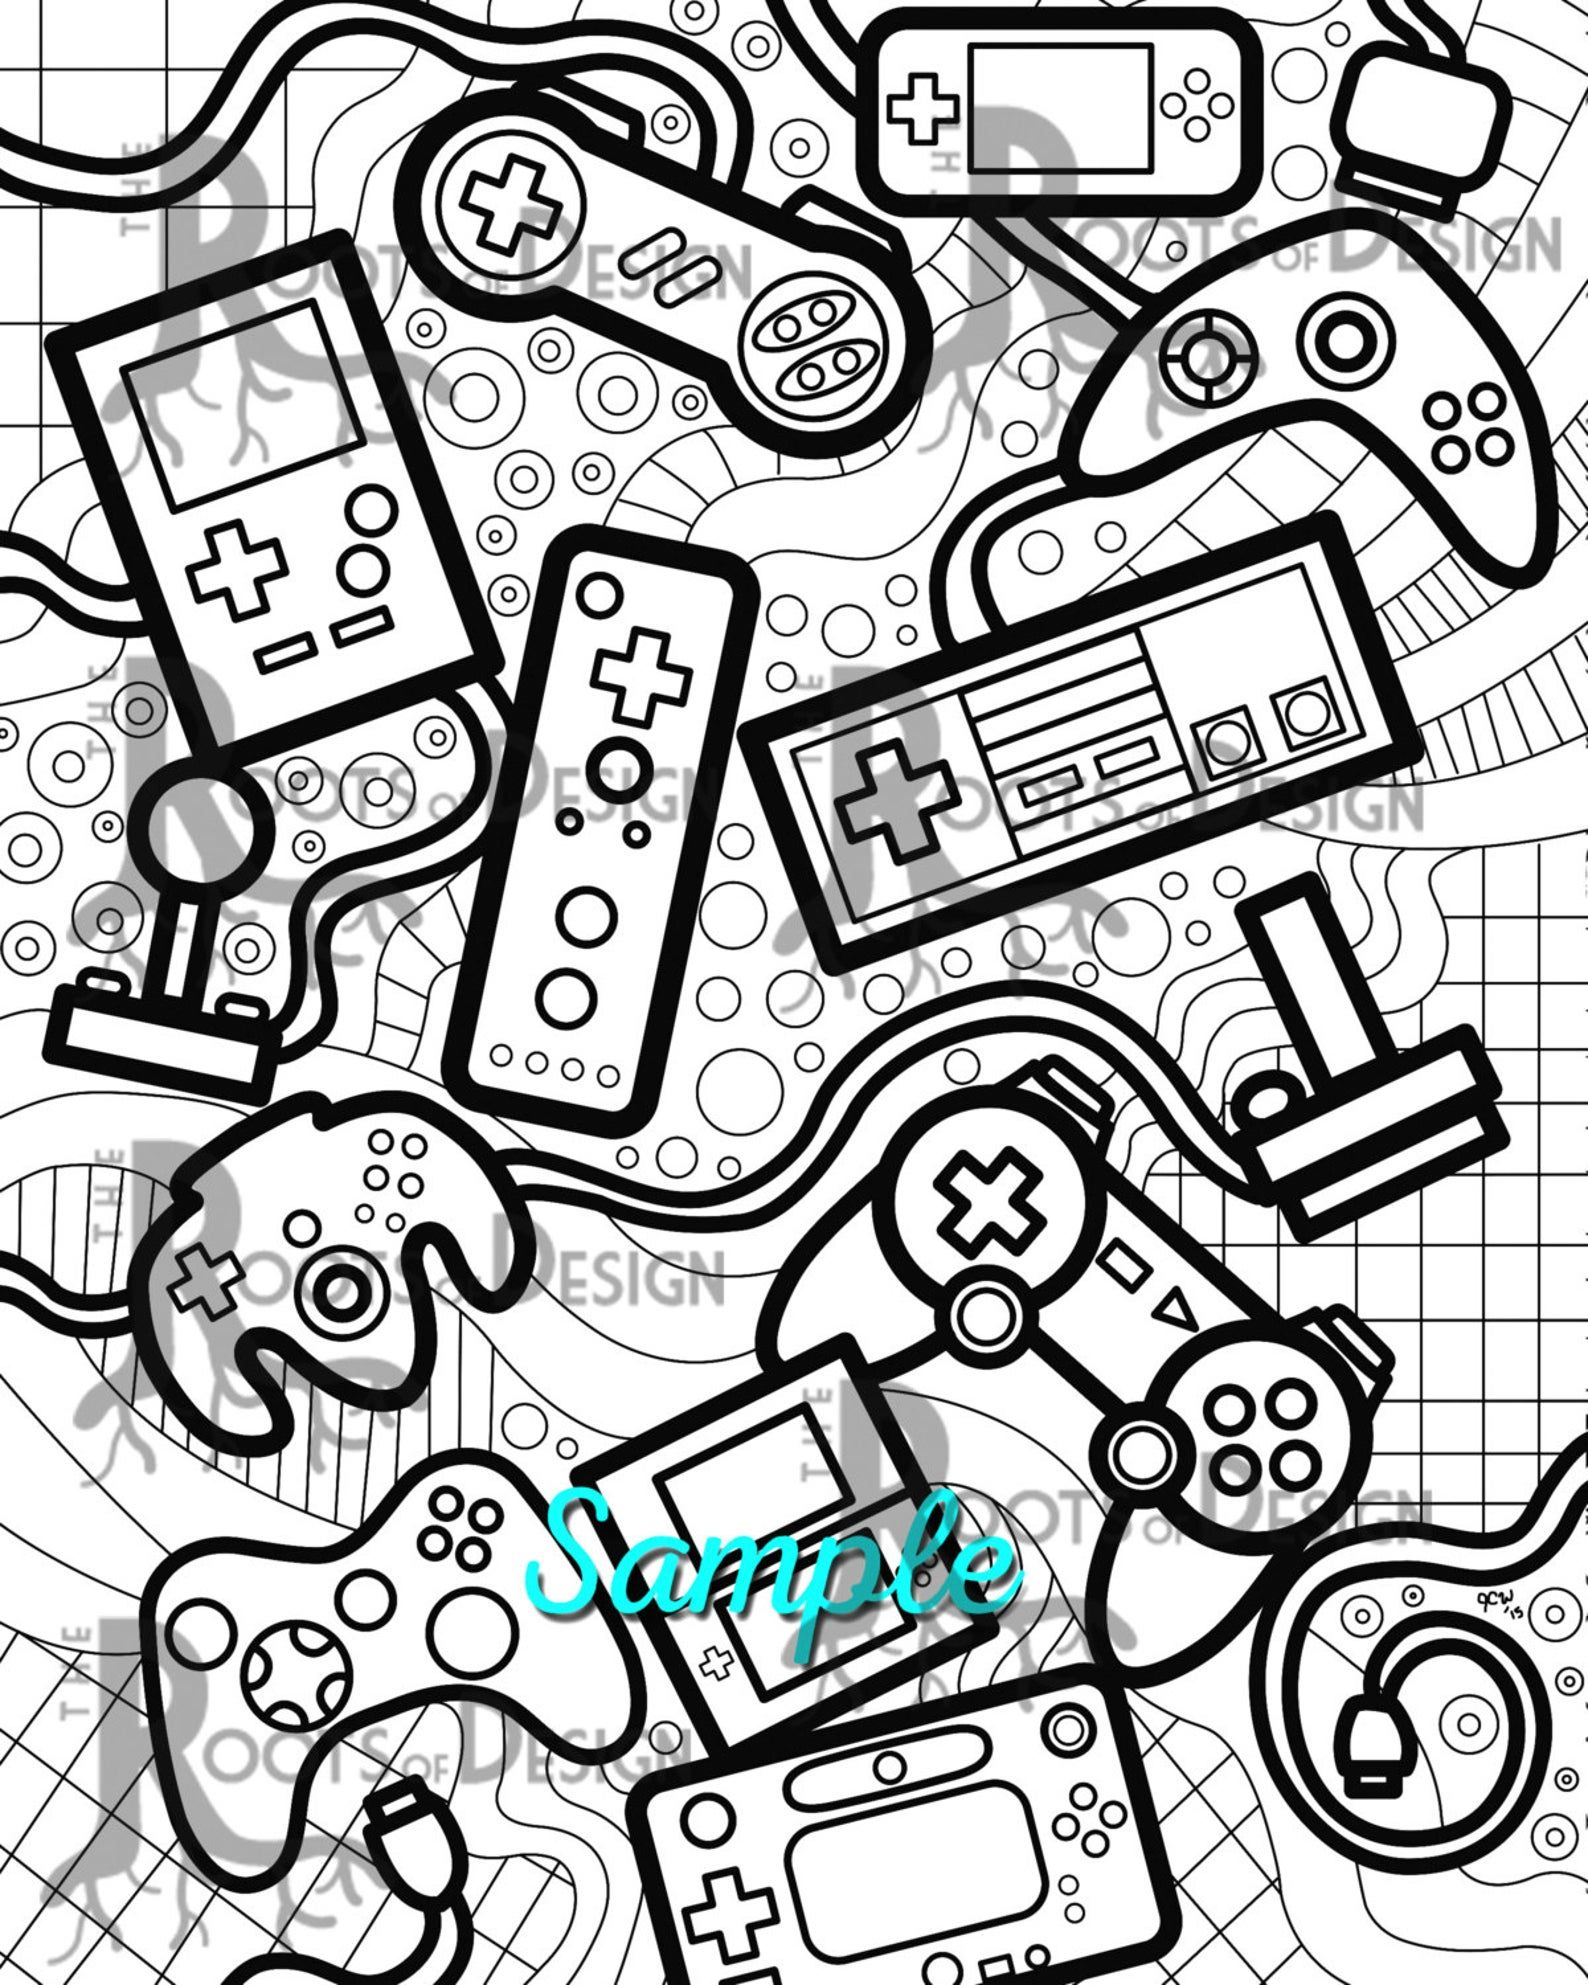 Instant Download Coloring Page Video Game Controllers Etsy In 2020 Video Game Drawings Doodle Art Easy Doodle Art